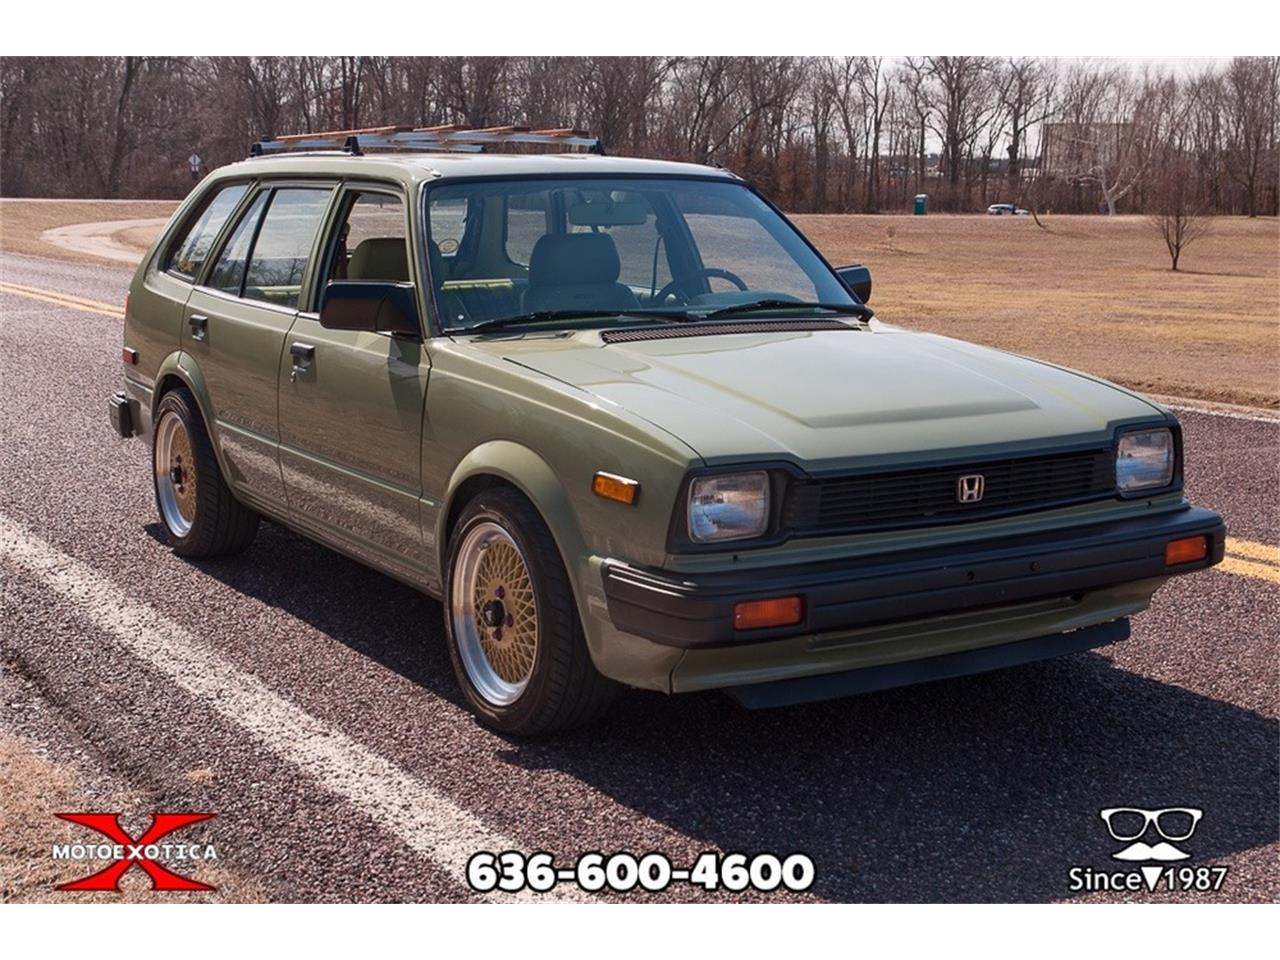 1983 Honda Civic Wagon for sale in St. Louis, MO – photo 8